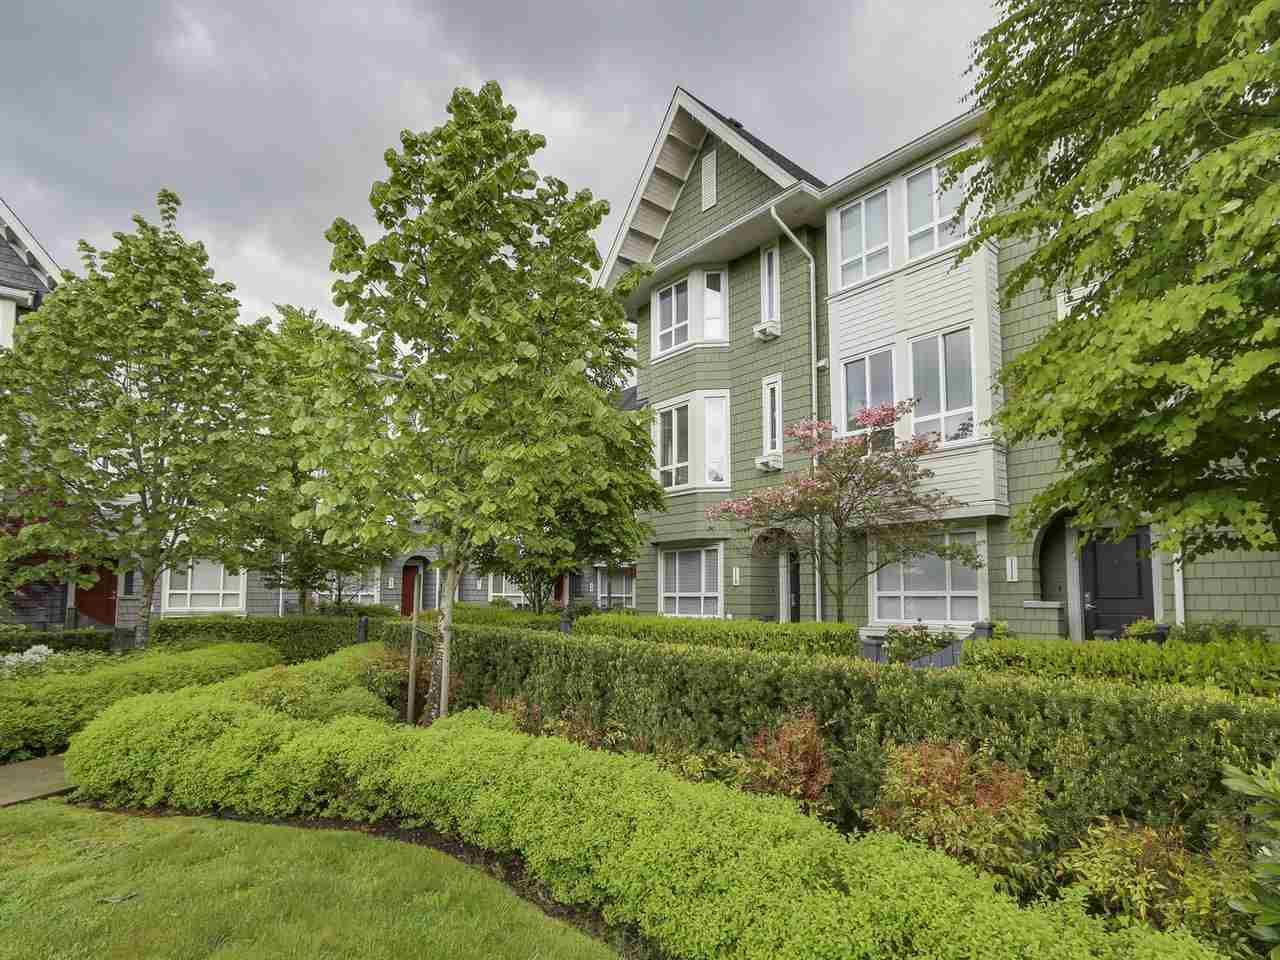 Main Photo: # 110 - 2418 Avon  Place in Port Coquitlam: Riverwood Townhouse for sale : MLS®# R2166312